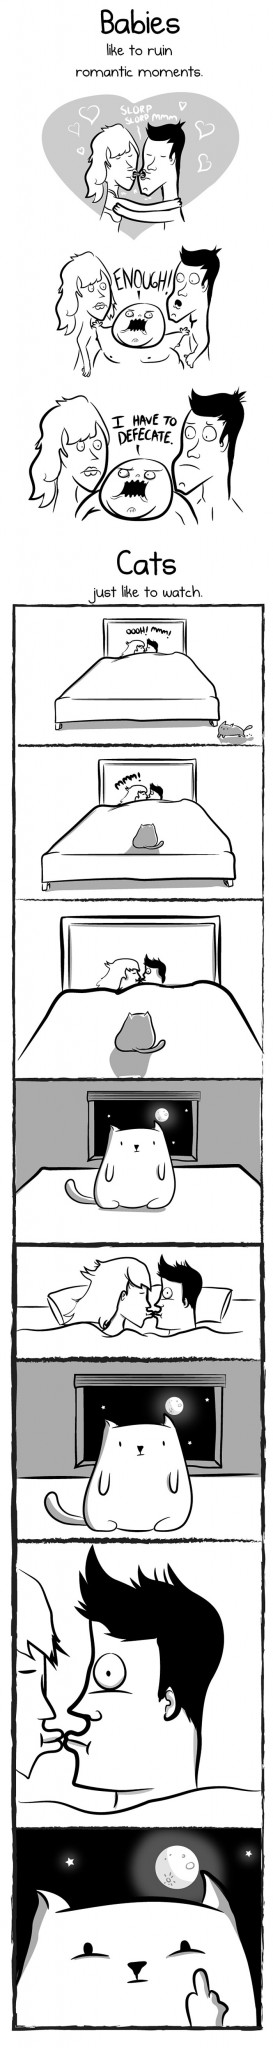 funny-cartoon-baby-vs-cat-hilarious-comics